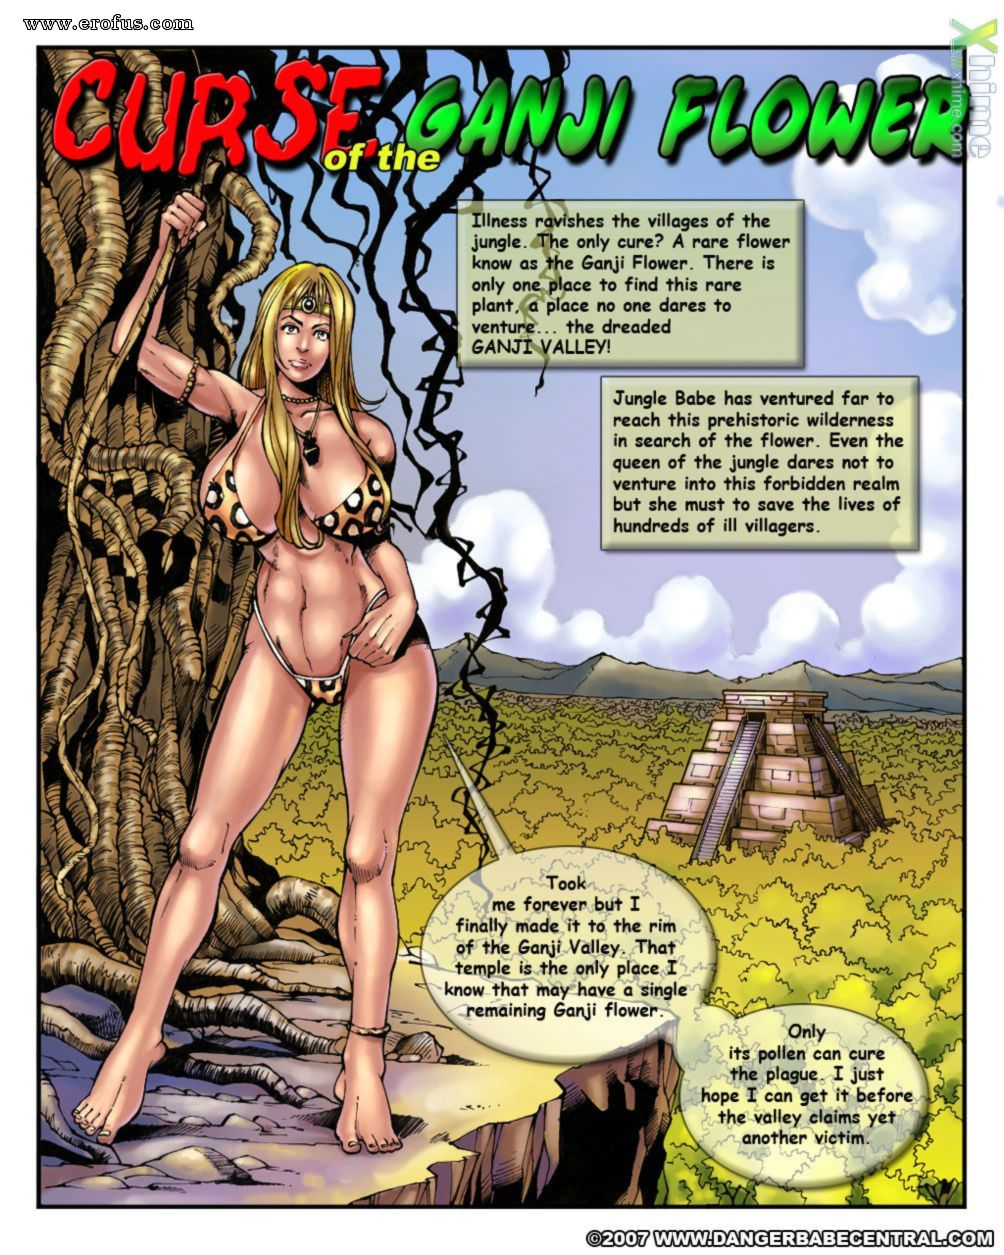 2D Sex Comics page 2 | central-comics/danger-babe-central/2d/jungle-babe